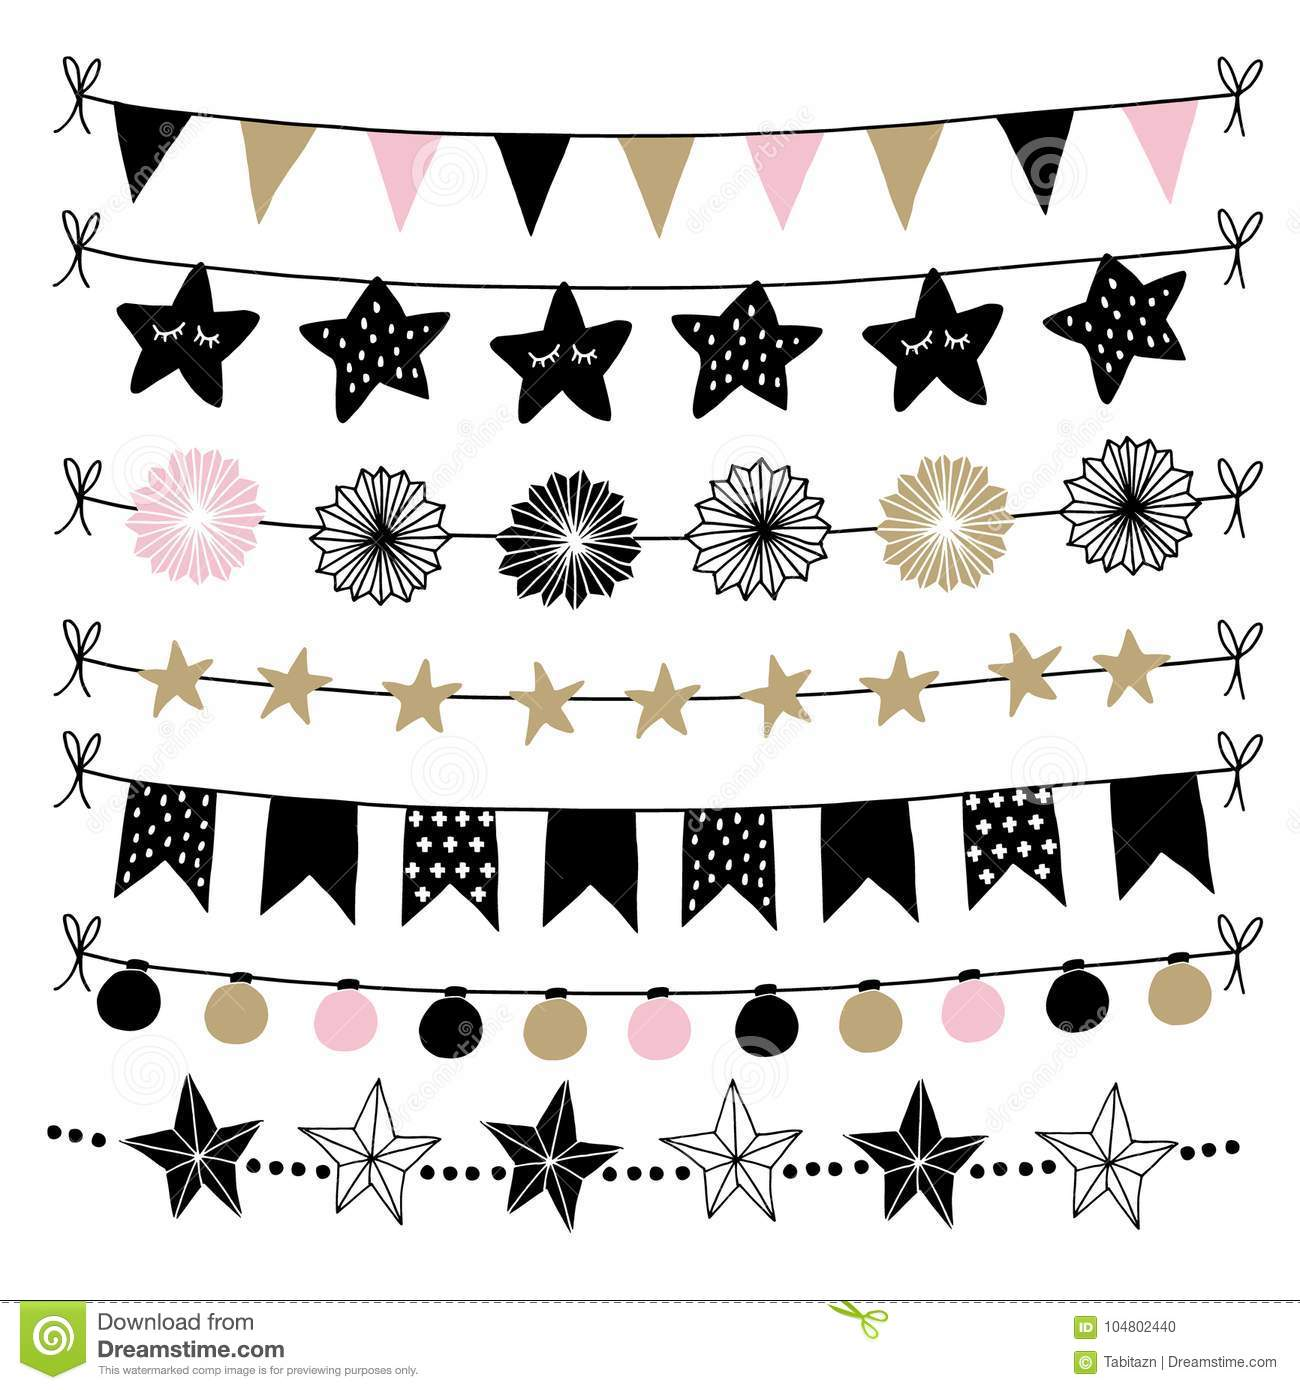 Set of birthday, New Year decorative borders, strings, garlands, brushes. Party decoration with Christmas balls, baubles